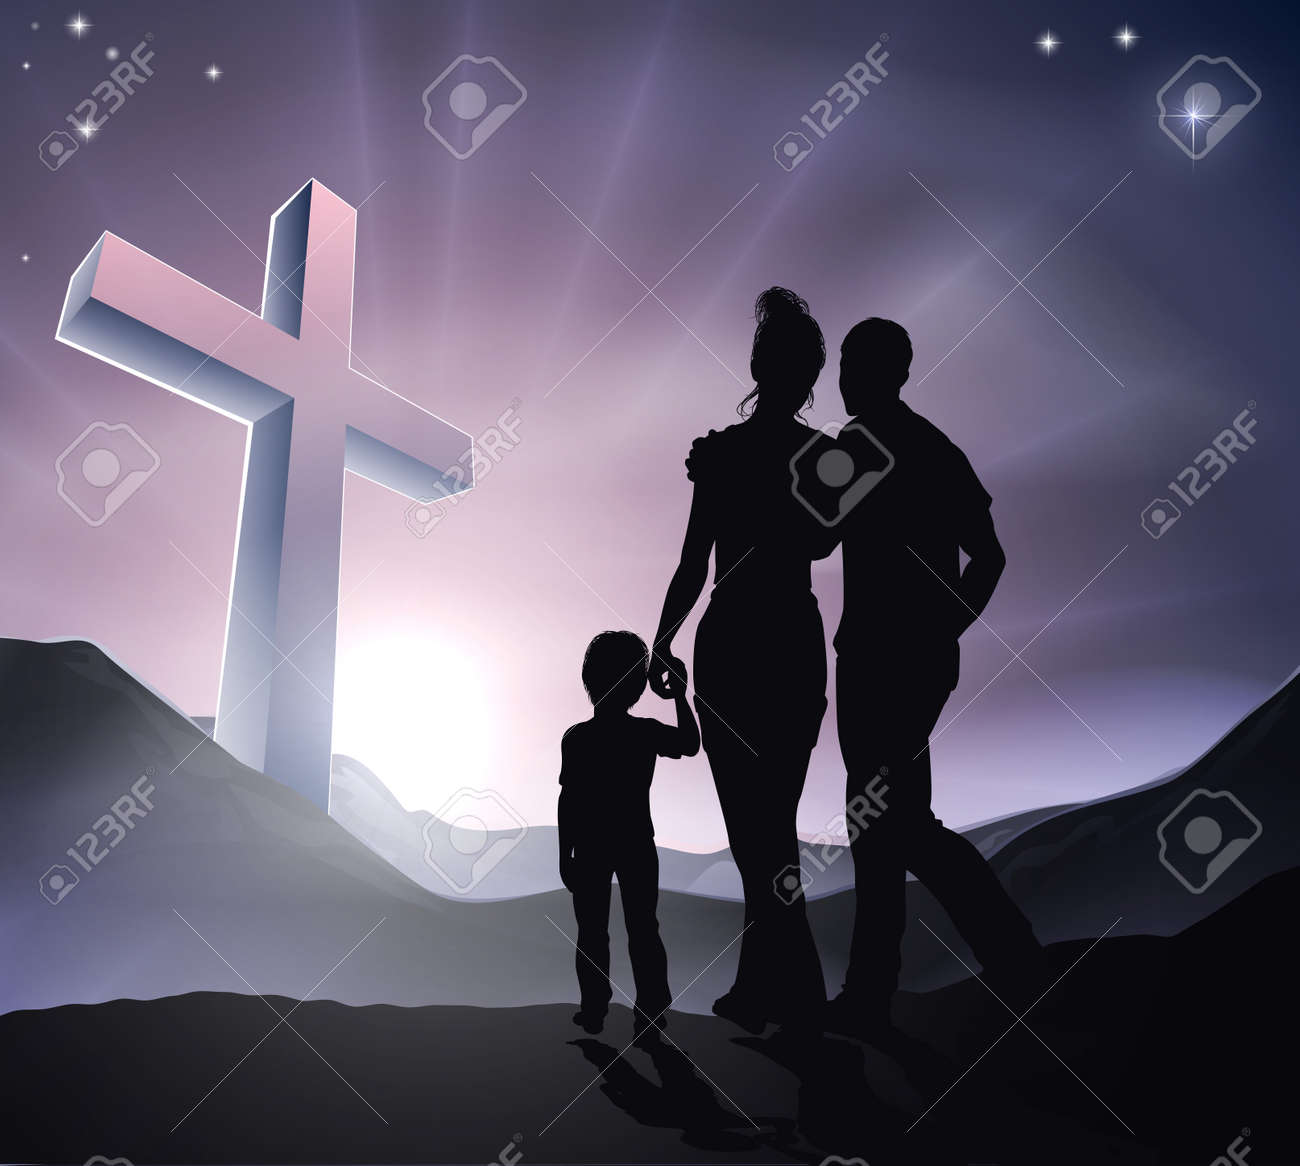 church images u0026 stock pictures royalty free church photos and